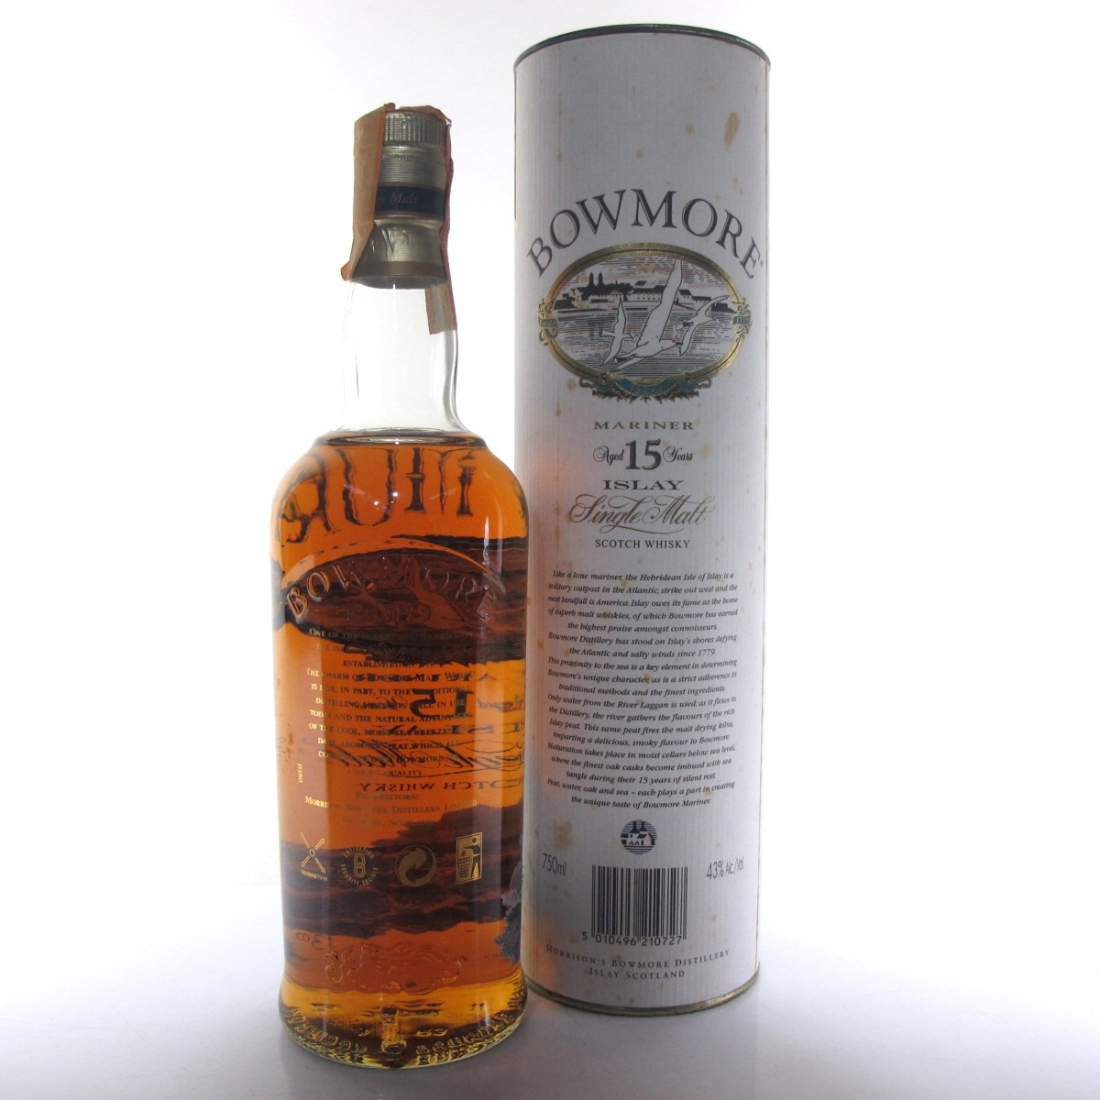 Bowmore 15 Year Old Mariner / Screen Print Label